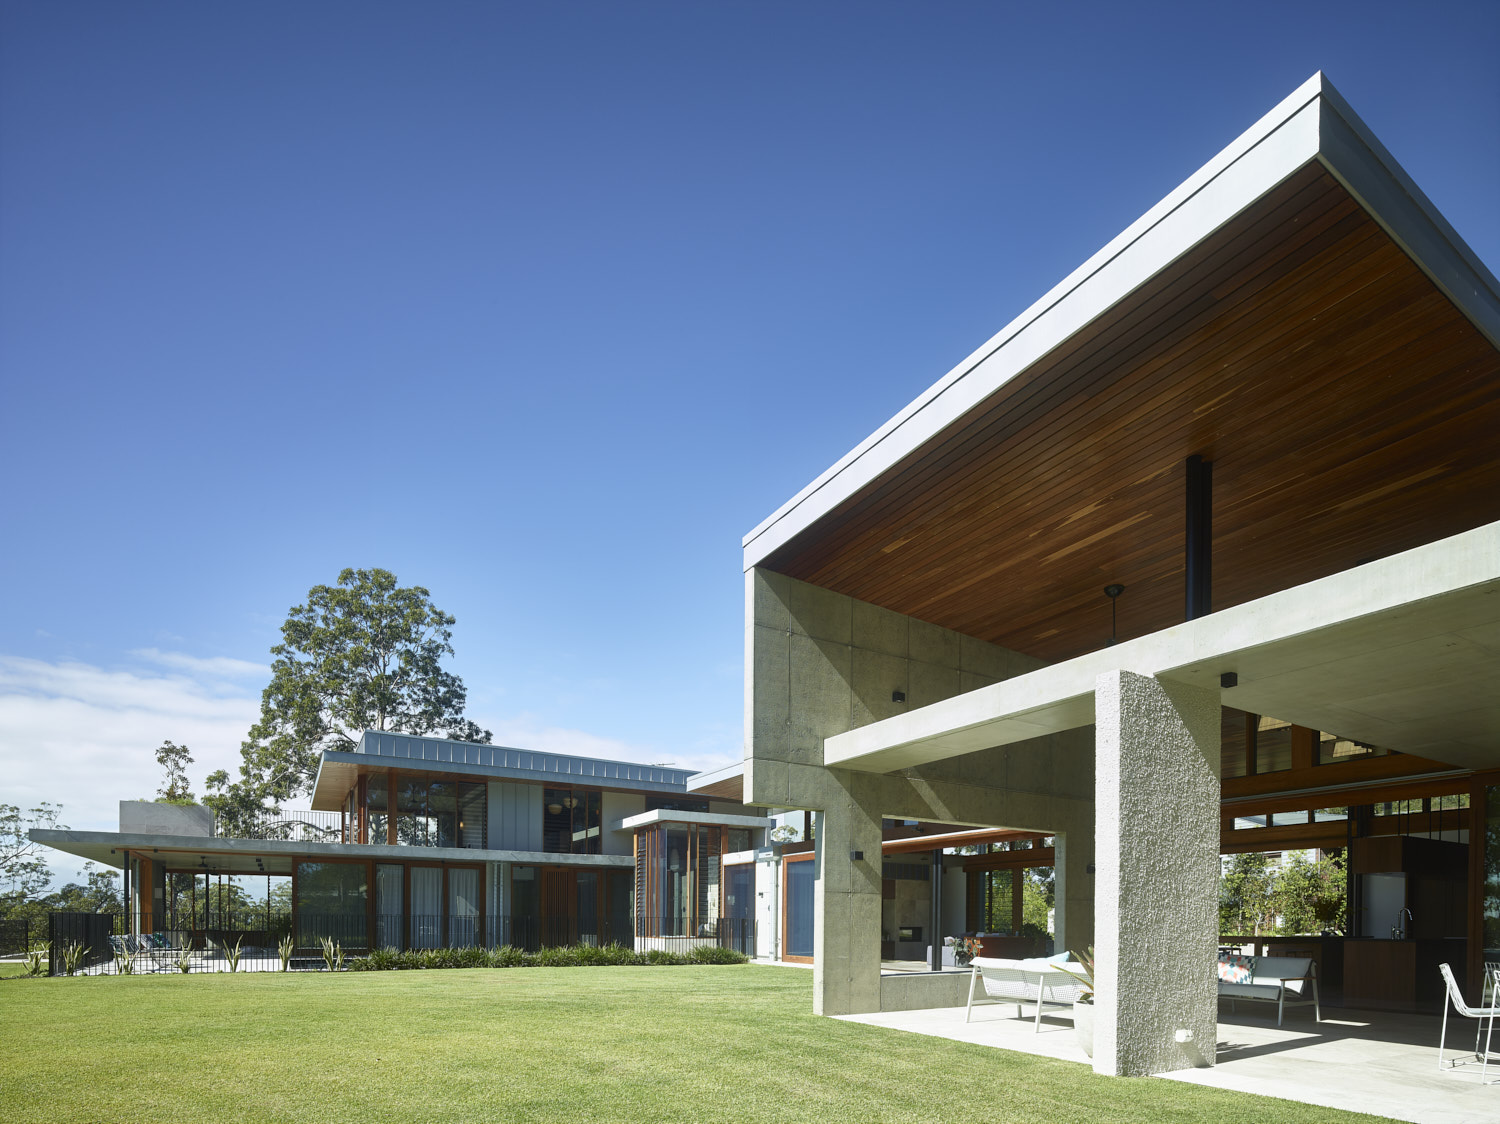 The Nest House By Shaun Lockyer Architect